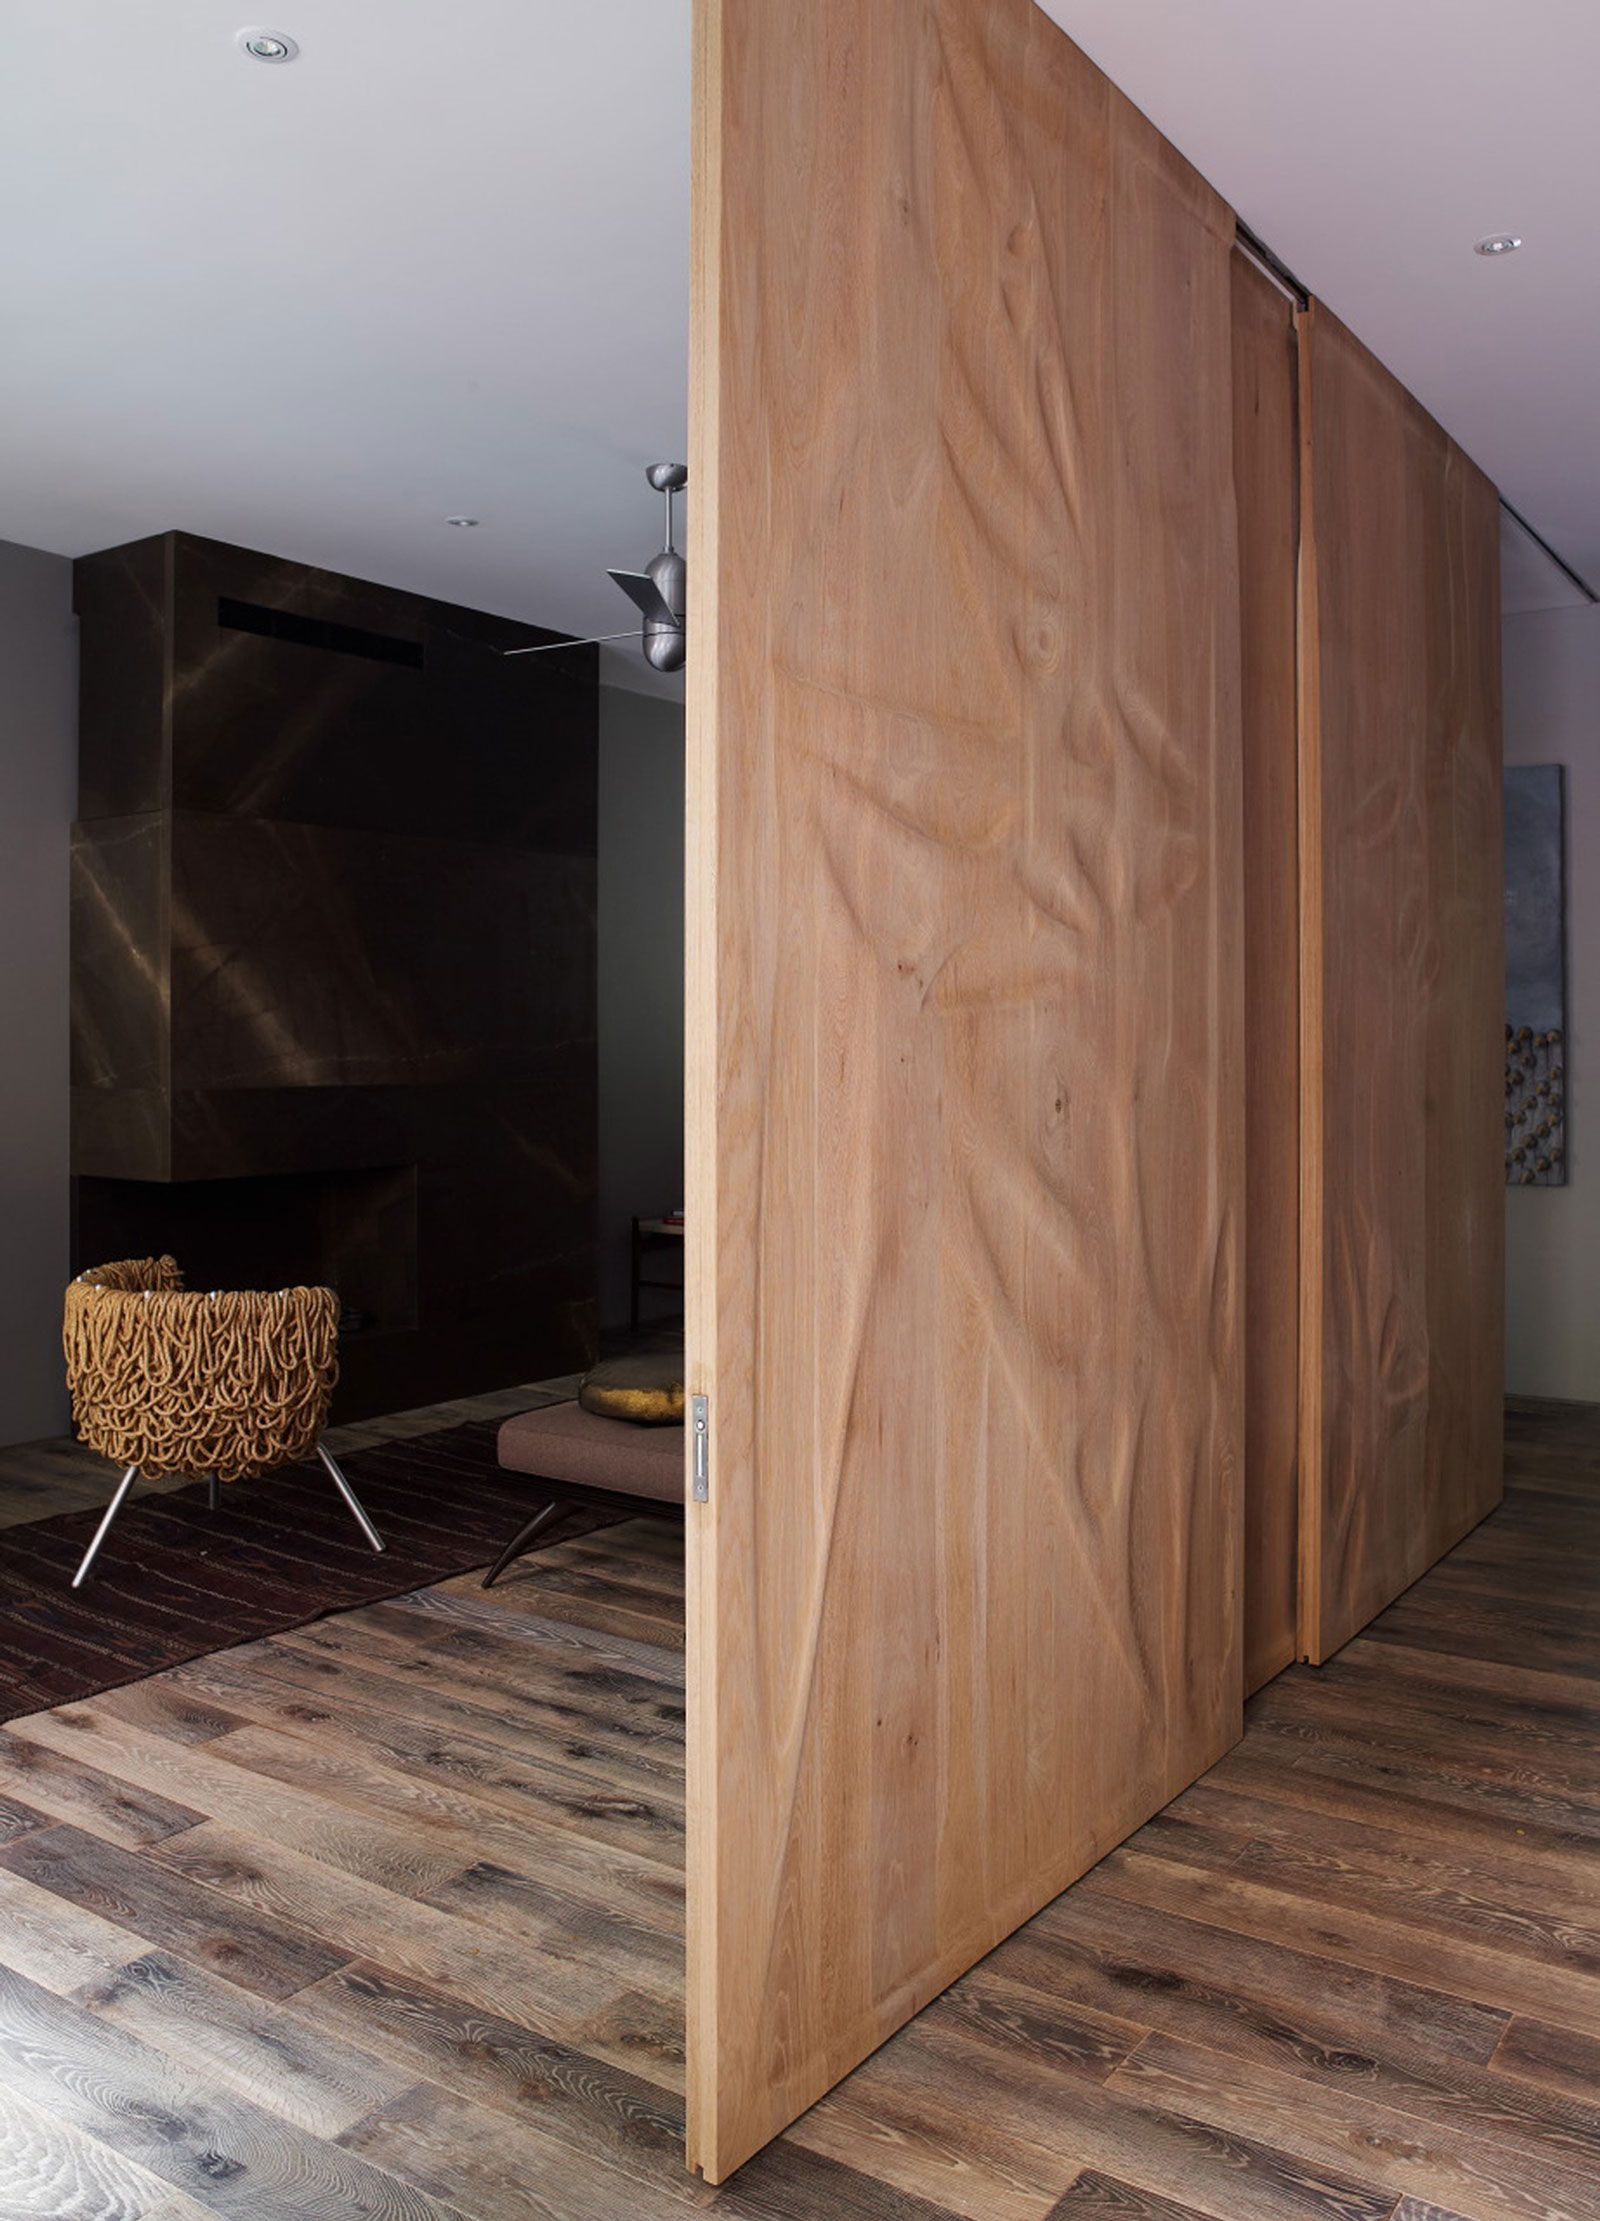 Chelsea Townhouse by Archi-Tectonics (16)